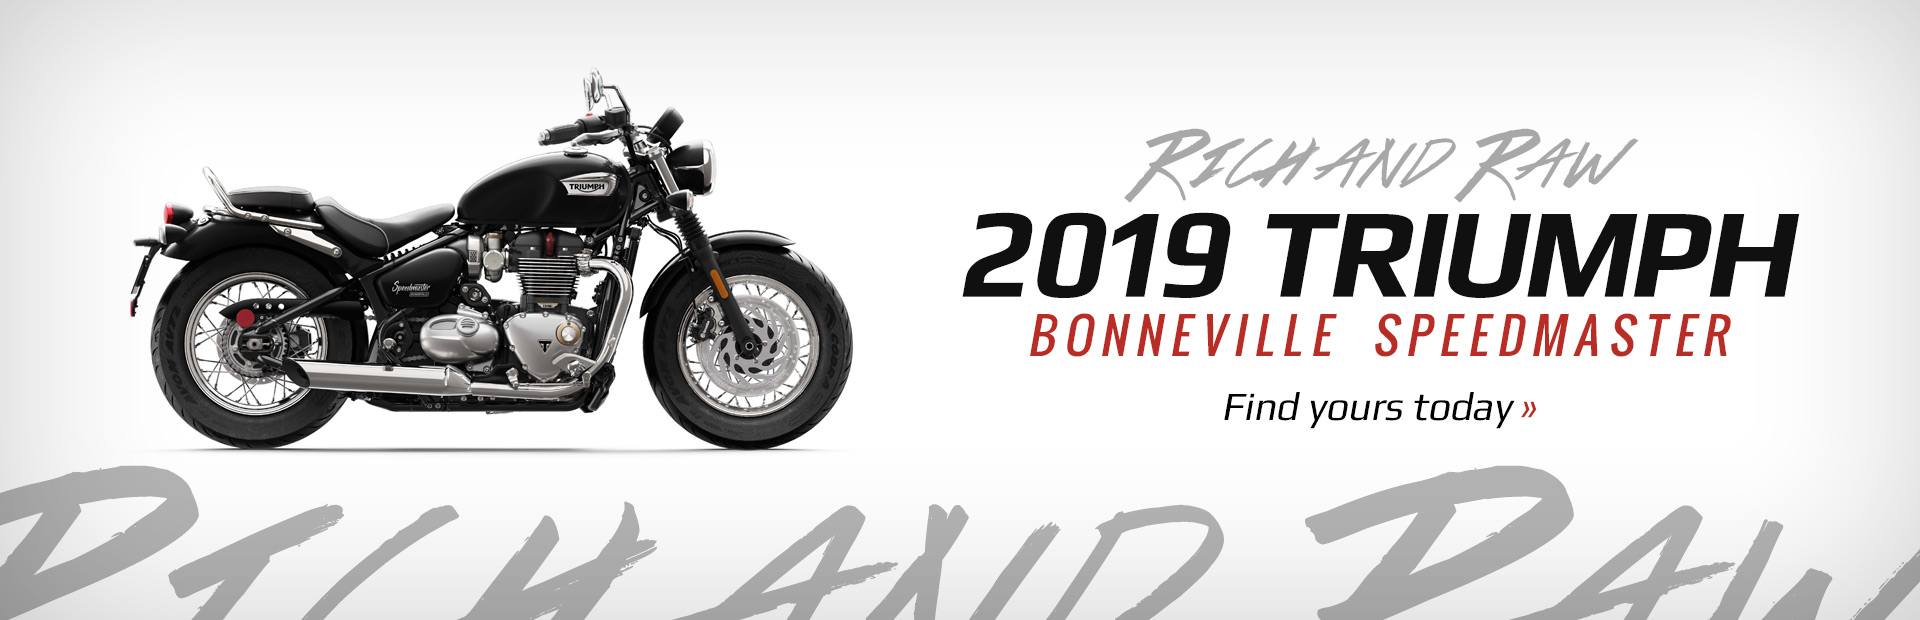 2019 Triumph Bonneville Speedmaster Models: Click here to view the lineup.